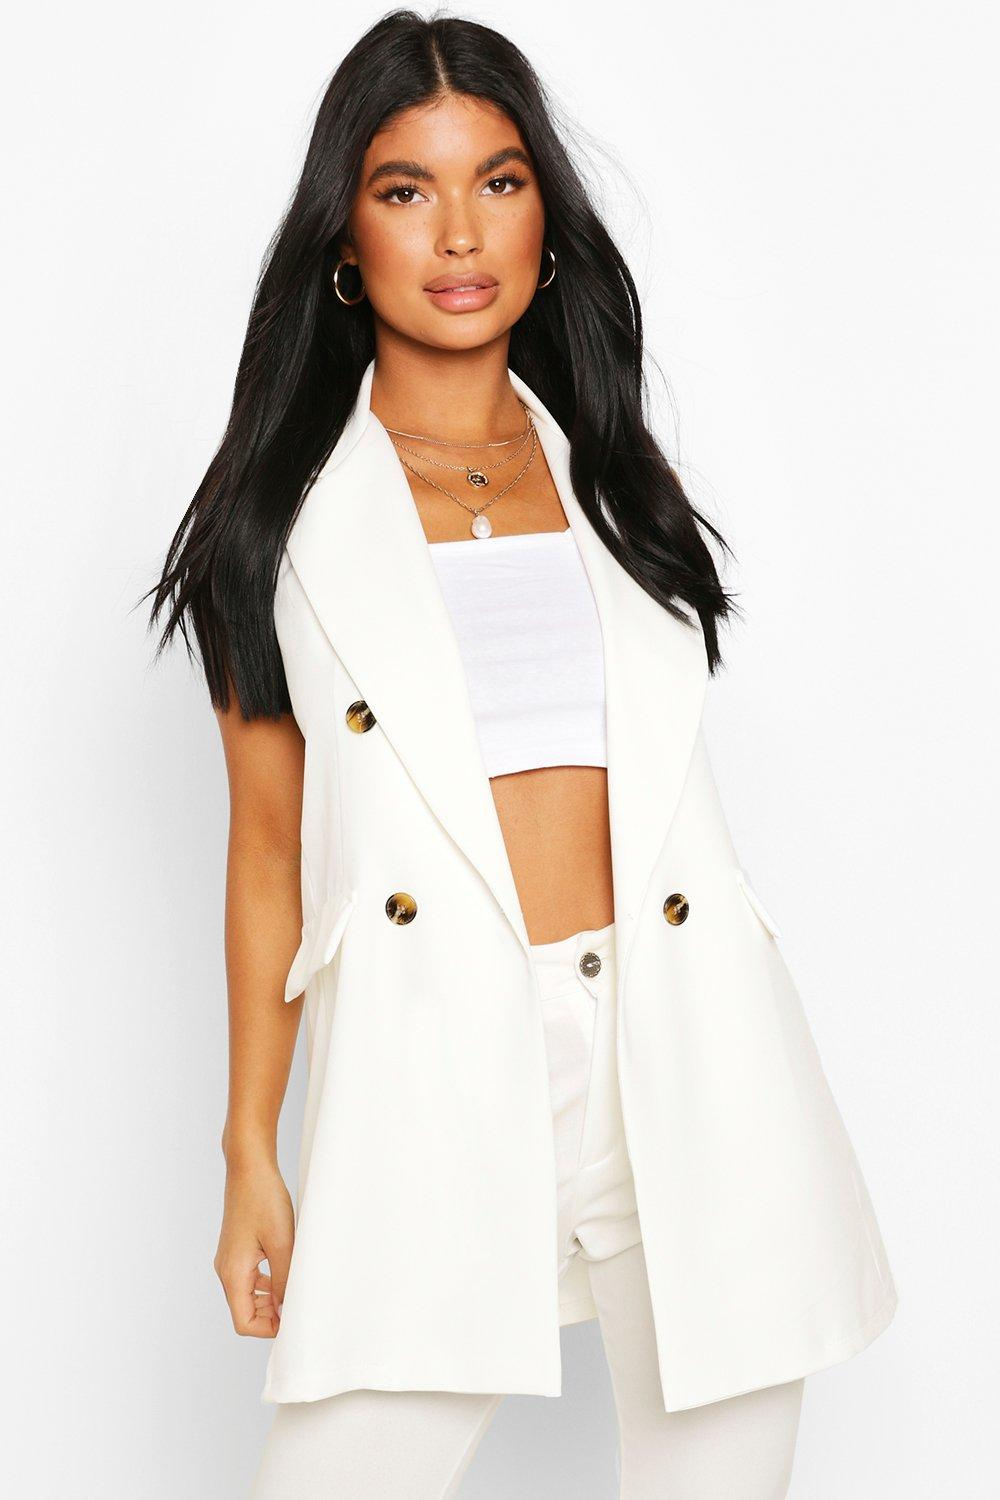 boohoo Womens Petite Double Breasted Sleeveless Blazer - White - 14, White